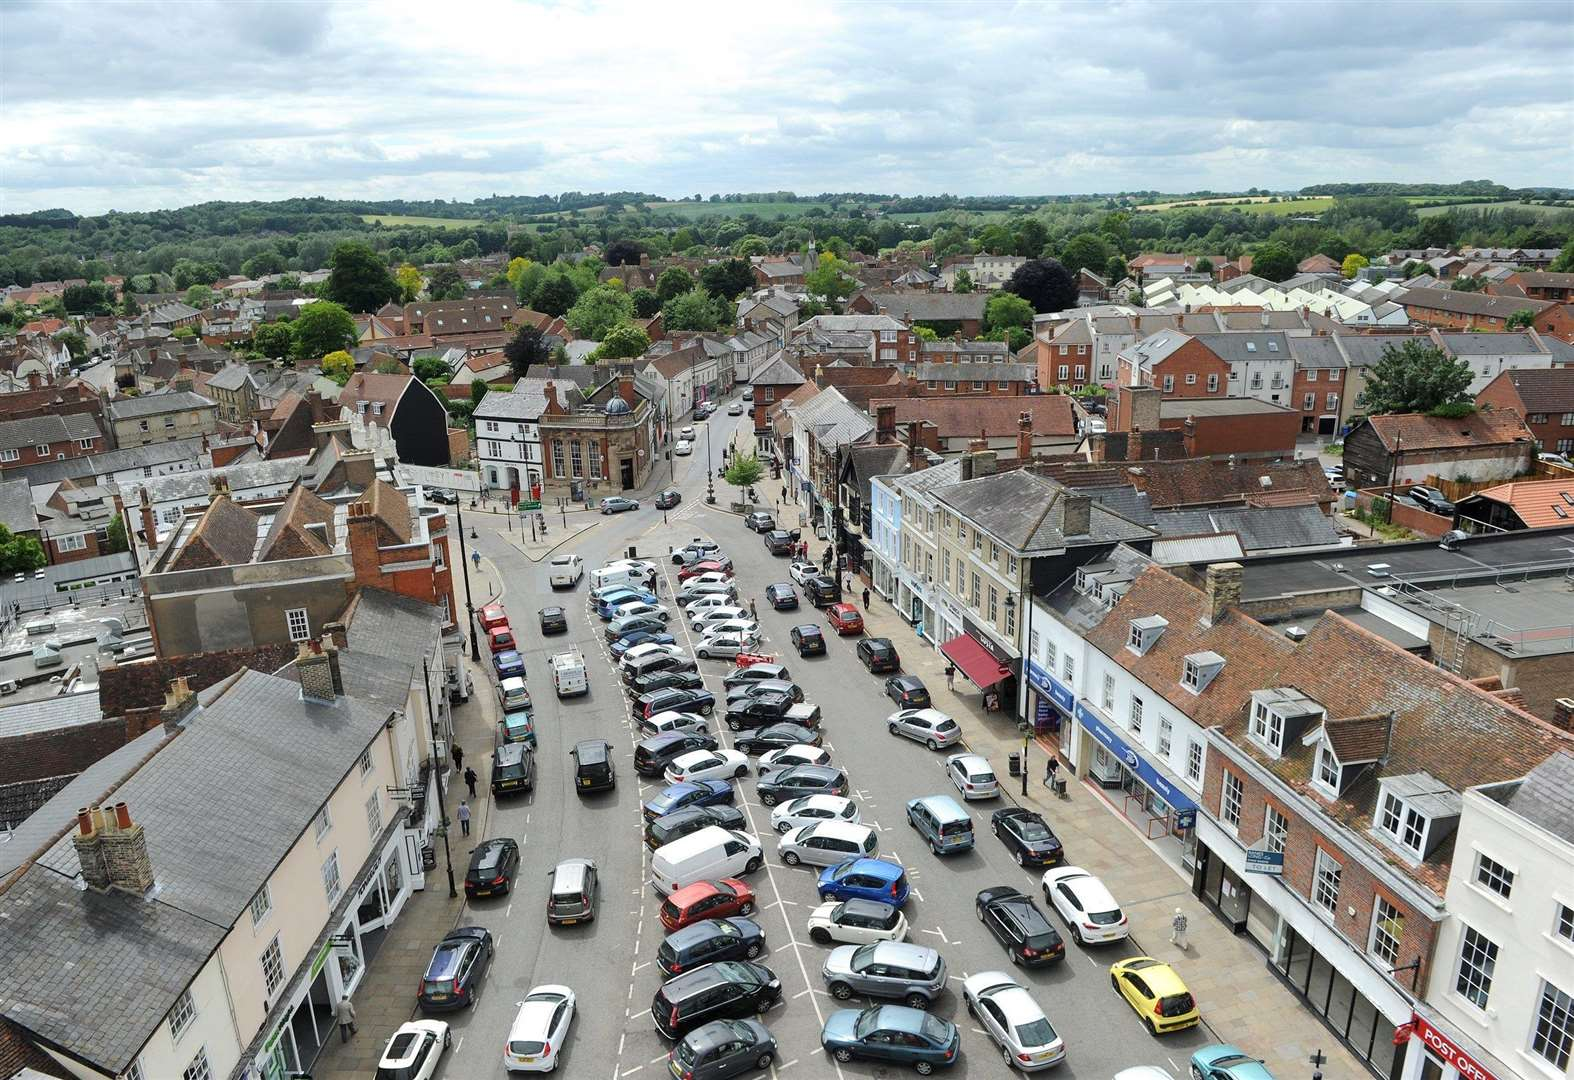 Sudbury's free parking under review as Babergh unveils 'Vision for Prosperity' plan